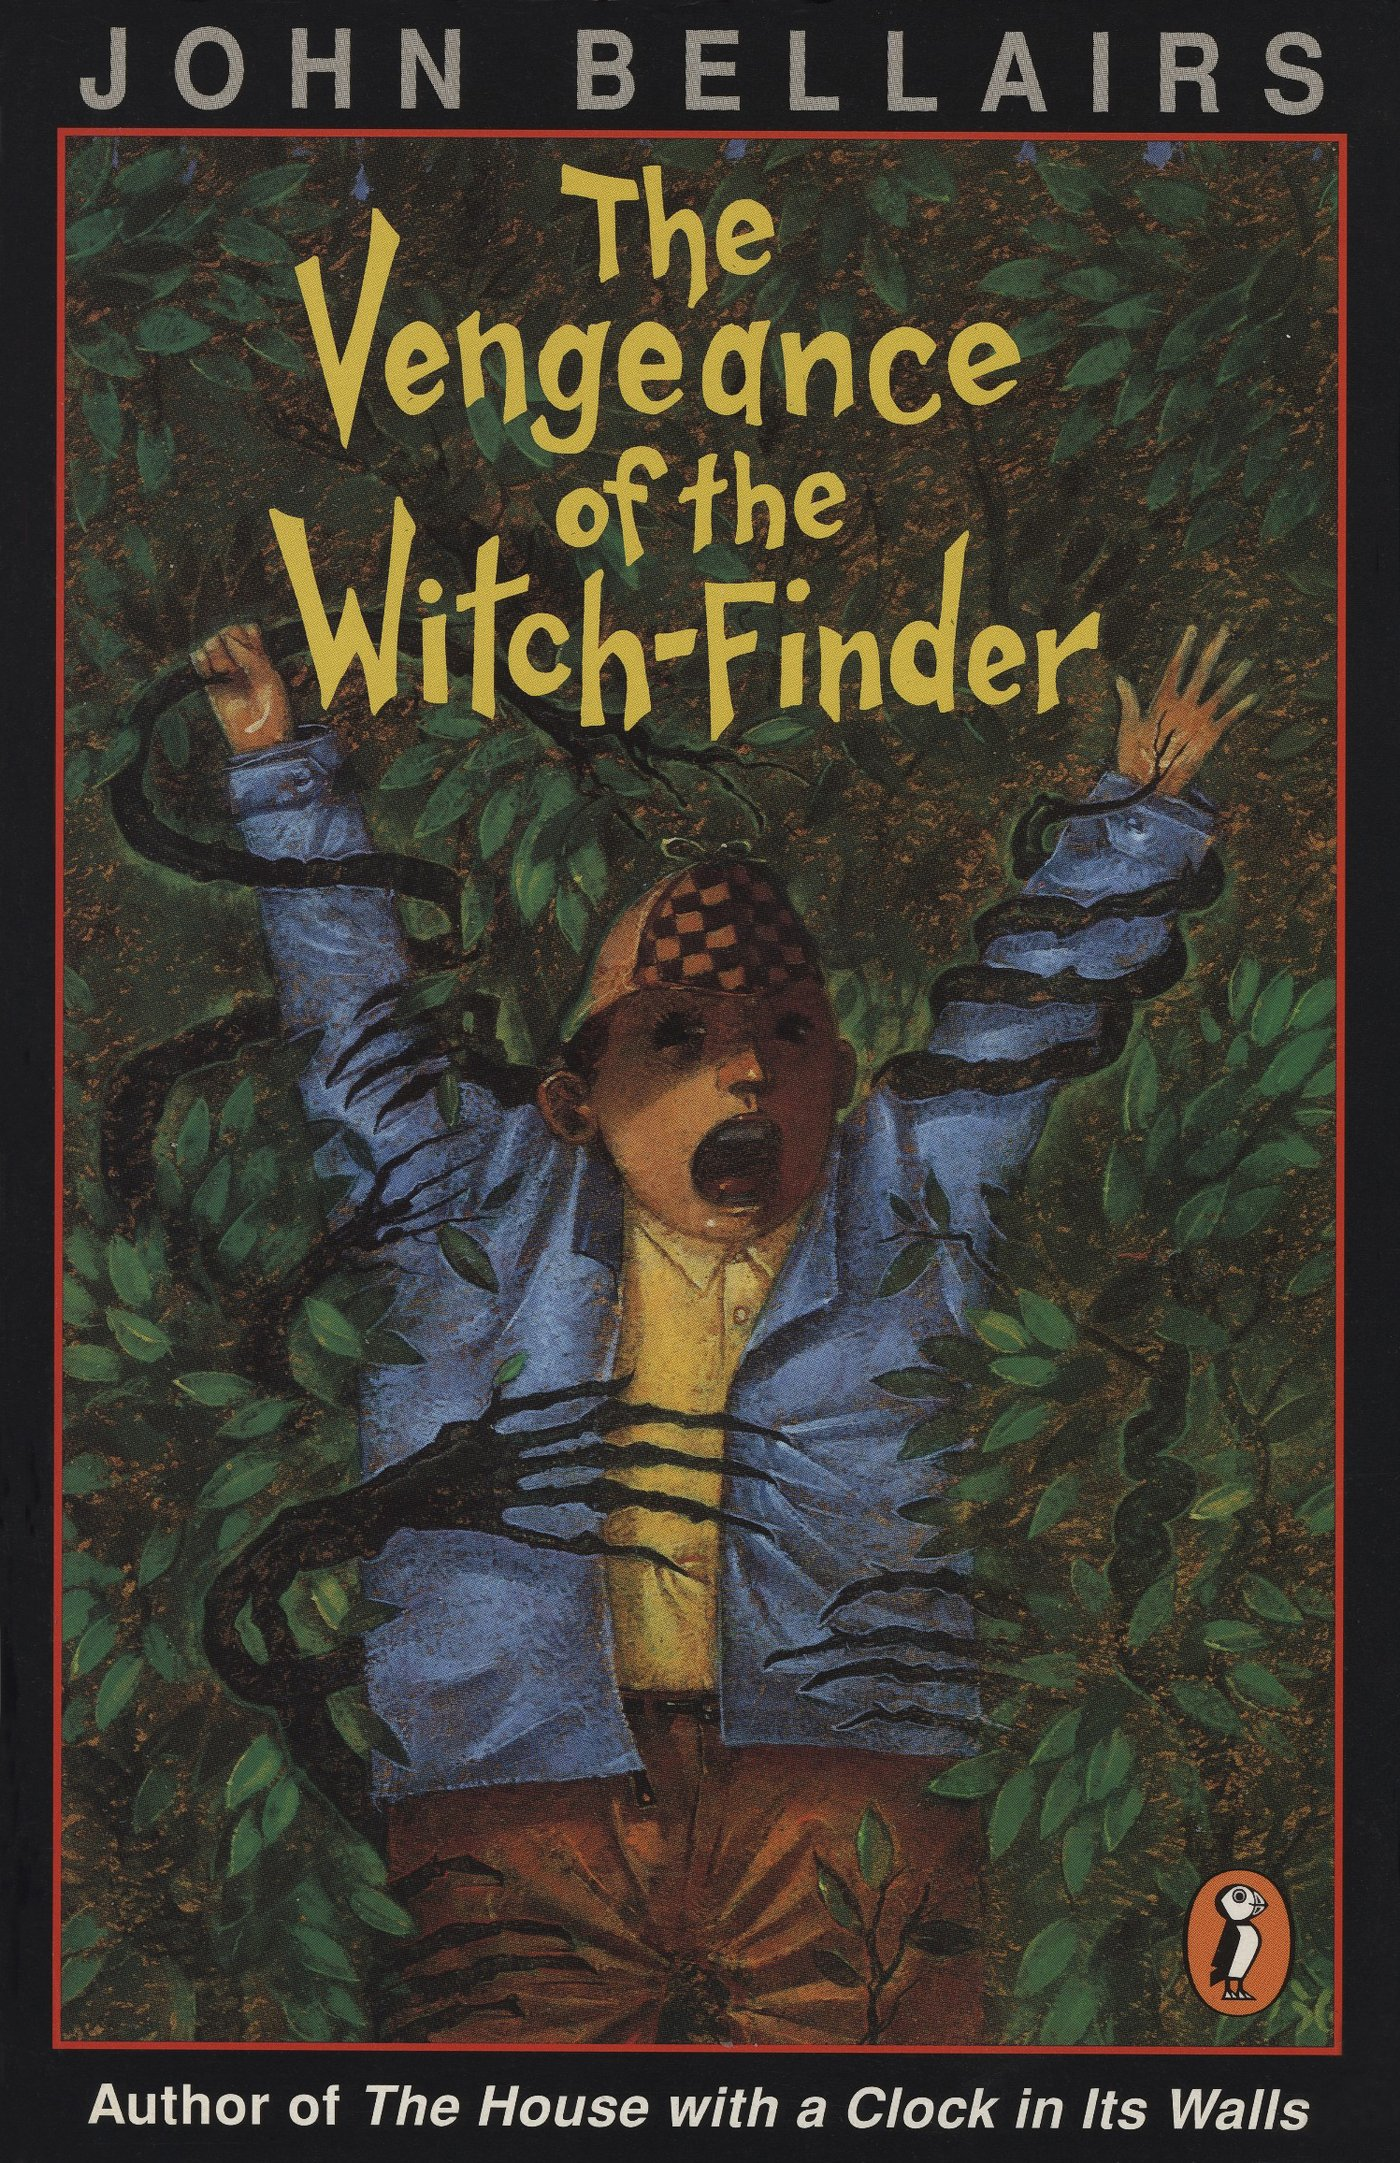 The Vengeance of the WitchFinder John Bellairs Brad Strickland